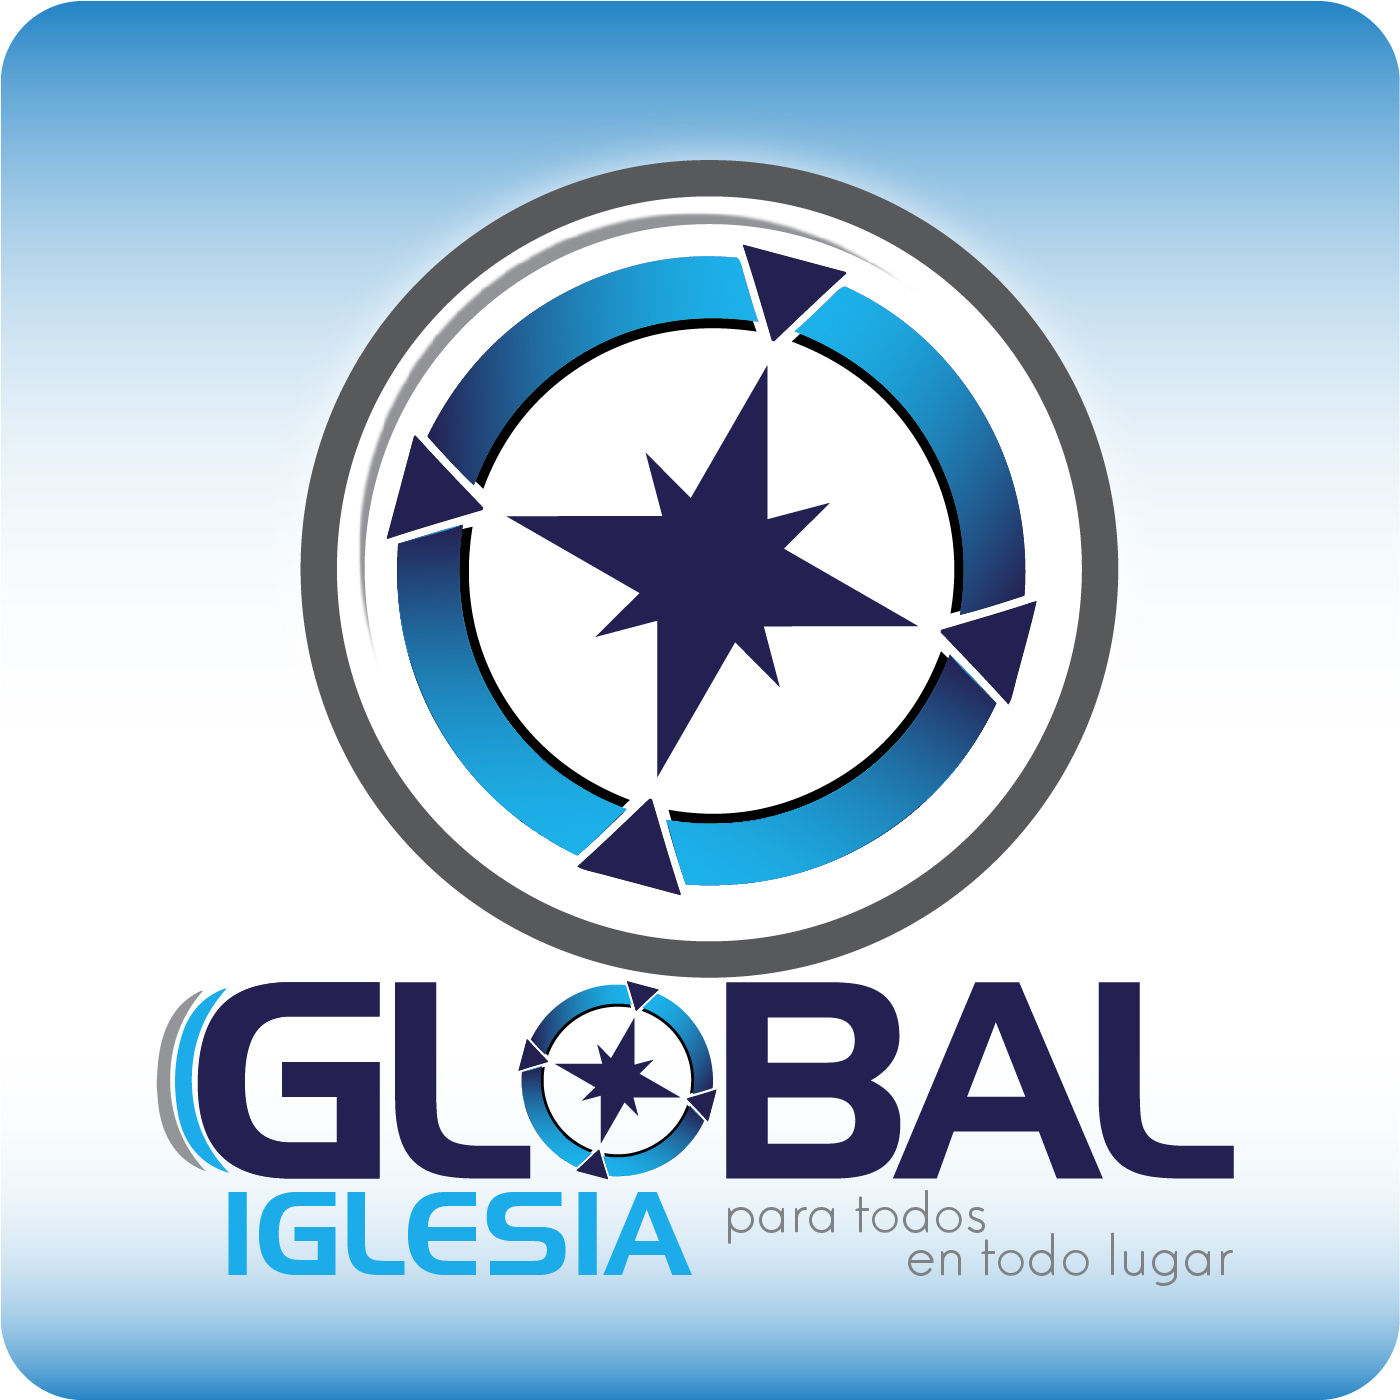 Iglesia Global